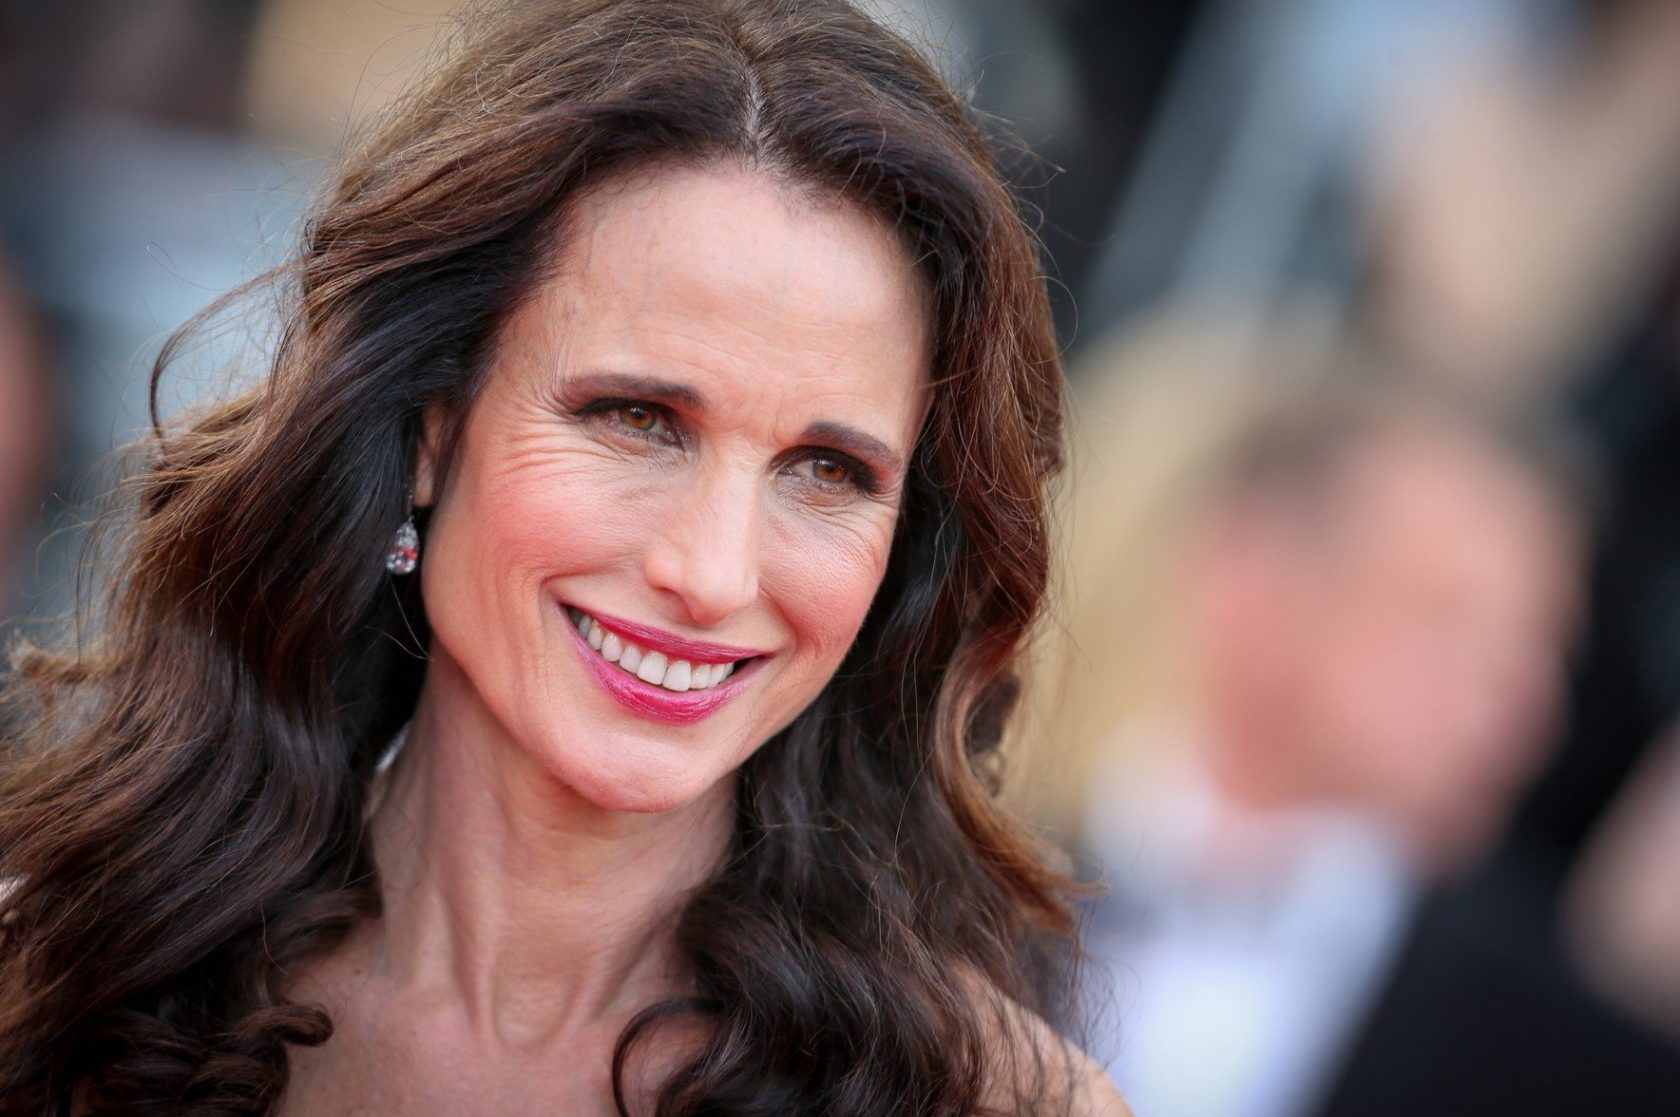 Andie MacDowell attend 'The Killing Of A Sacred Deer' premiere during the 70th annual Cannes Film Festival at Palais des Festivals on May 22, 2017 in Cannes, France., Image: 333259522, License: Rights-managed, Restrictions: , Model Release: no, Credit line: Profimedia, Abaca